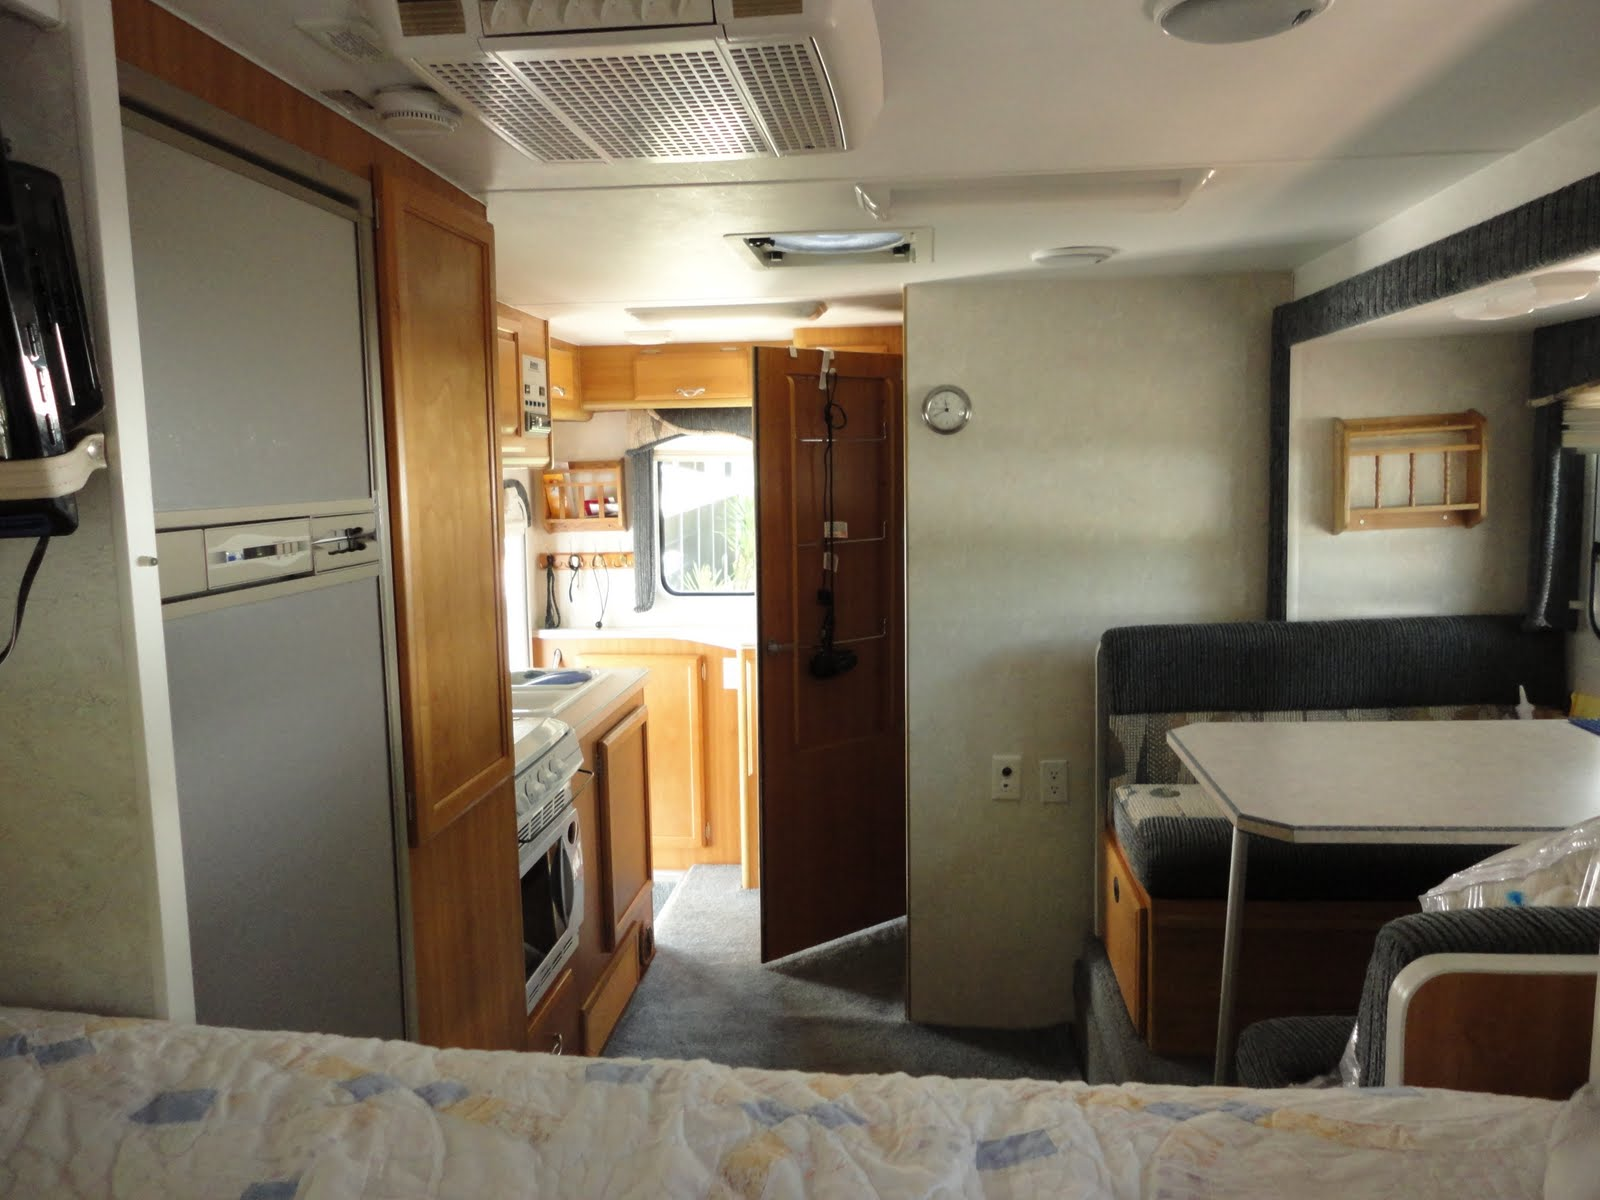 6 Door Ford Truck >> 2005 Lance Camper for sale: More camper and truck photos